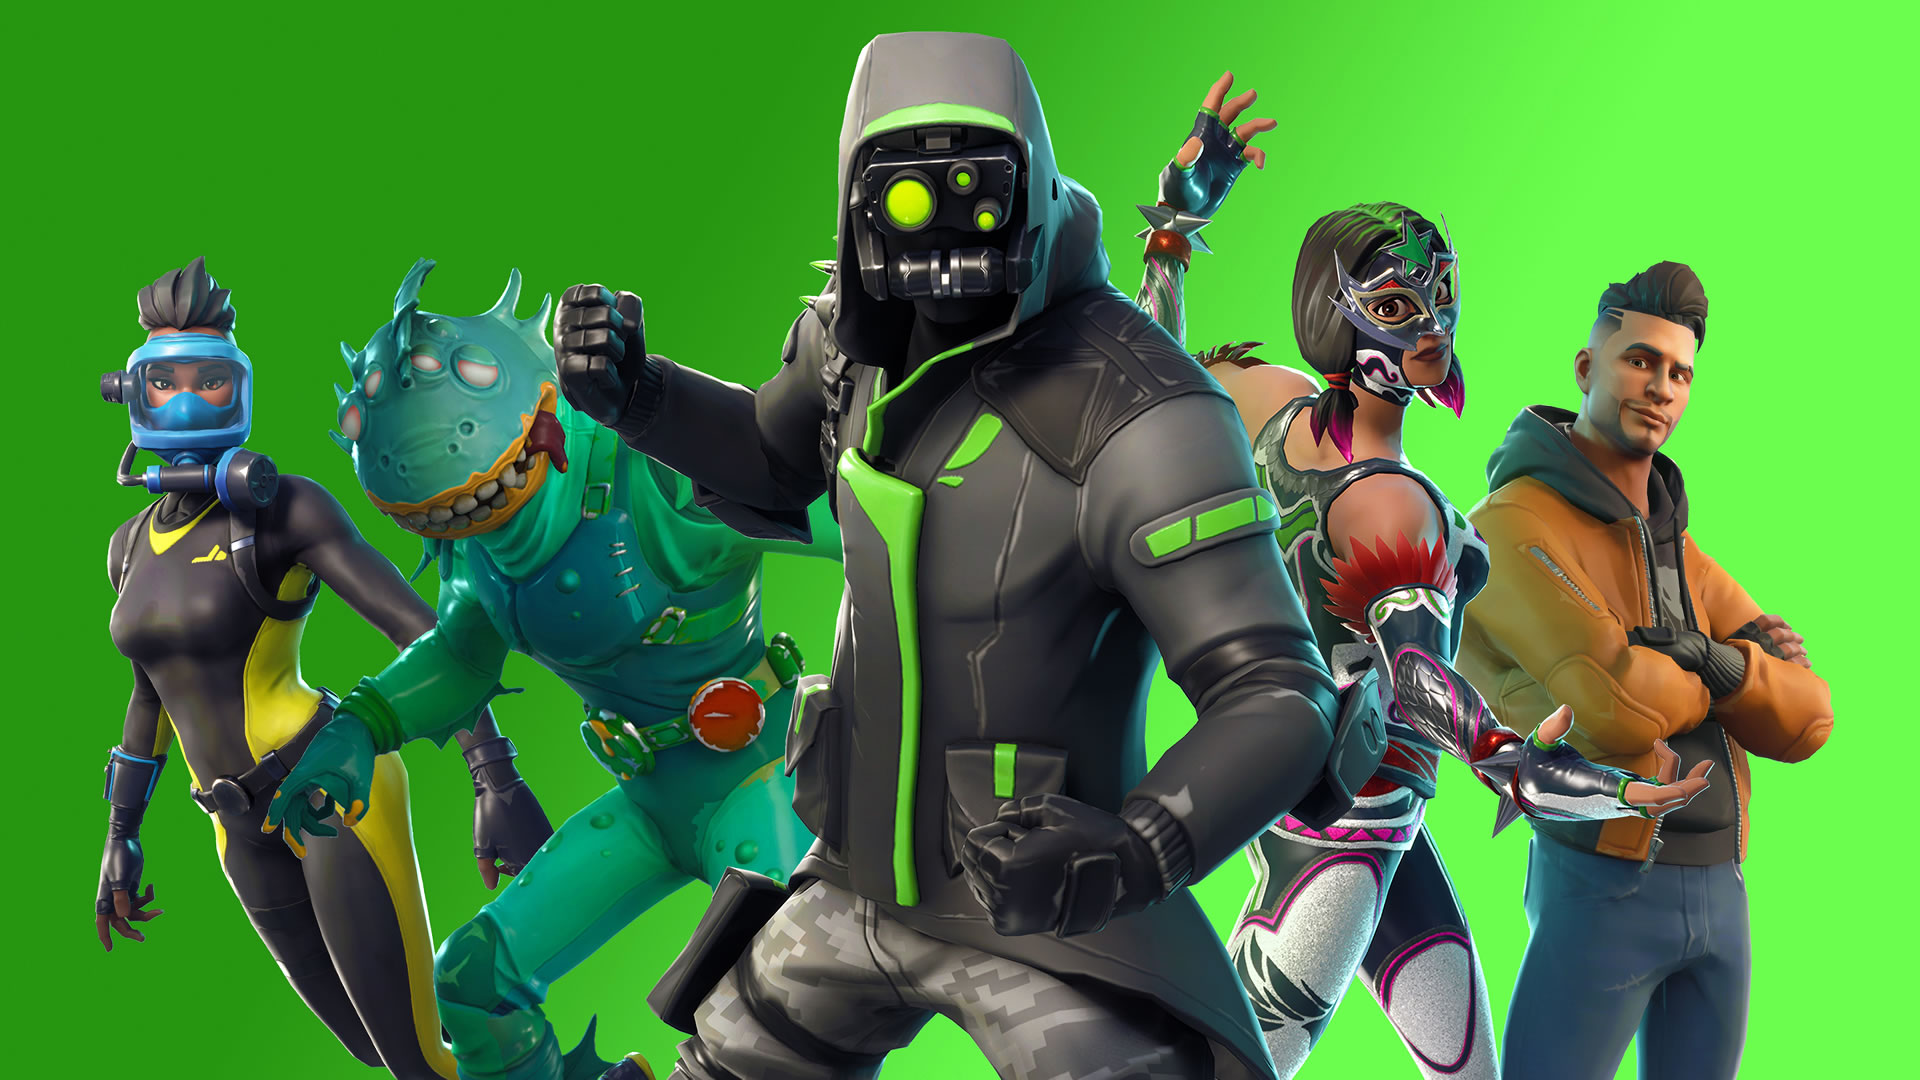 download wallpaper: Fortnite – Archetype wallpaper